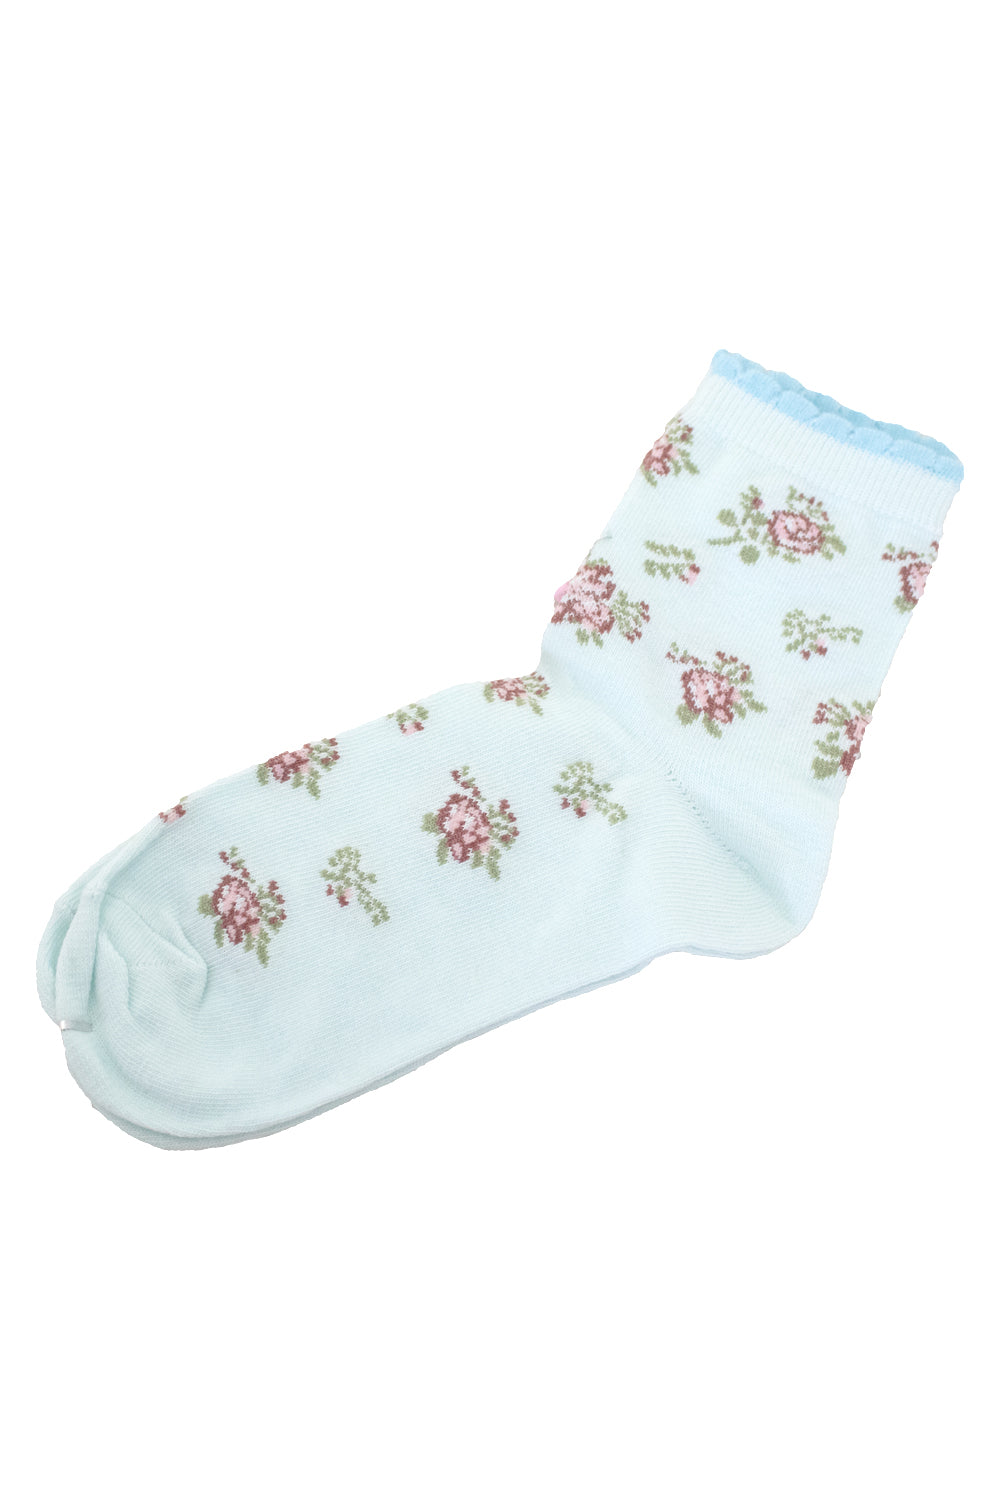 Frilly Floral Socks | Designer Fashion Accessories | Socks | Annah Stretton / Designer NZ